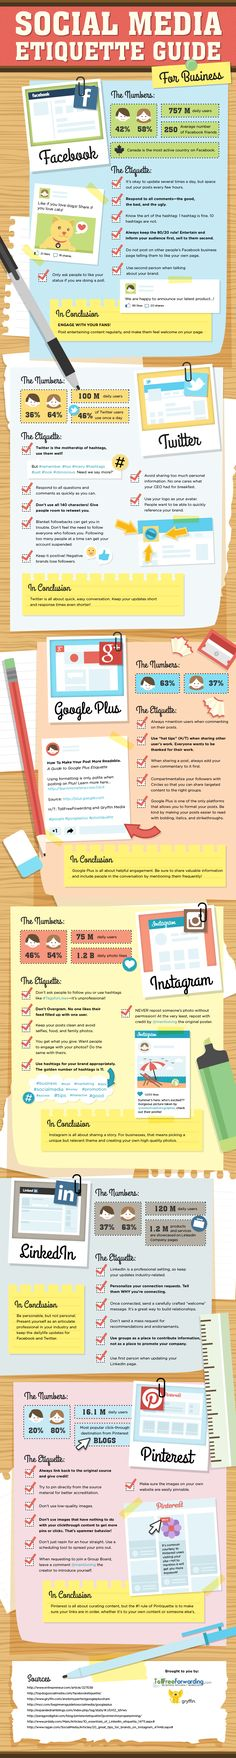 GooglePlus, Twitter, Instagram, Facebook, LinkedIn #Pinterest - #SocialMedia Etiquette Guide For Business - #infographic #SMM